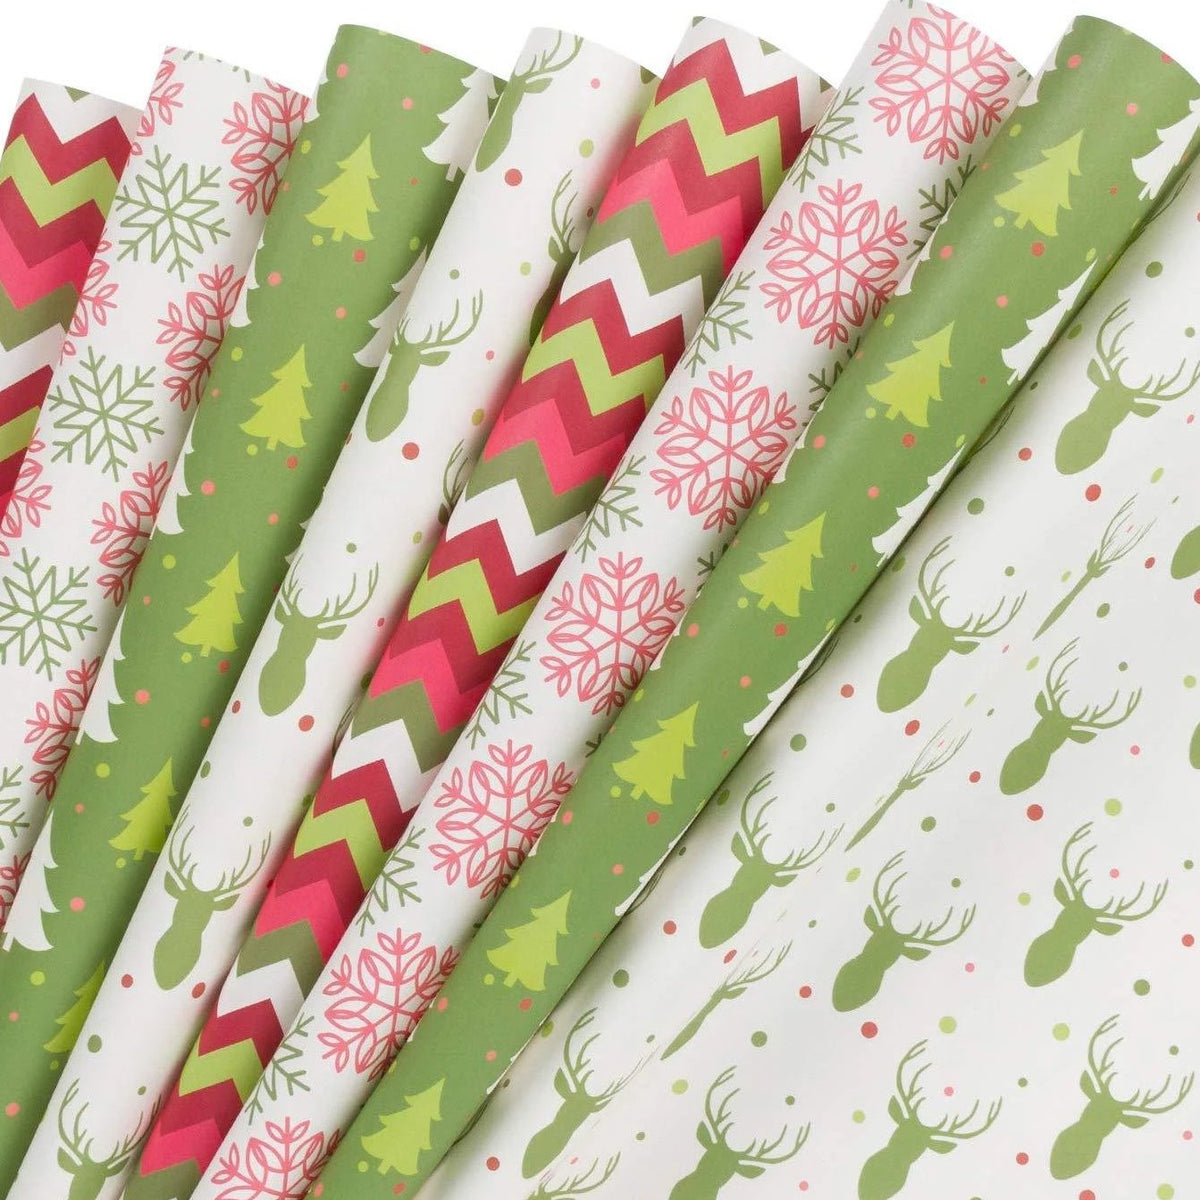 Wrapaholic-Christmas-gift-wrapping-paper-sheets-tree-snow-deer